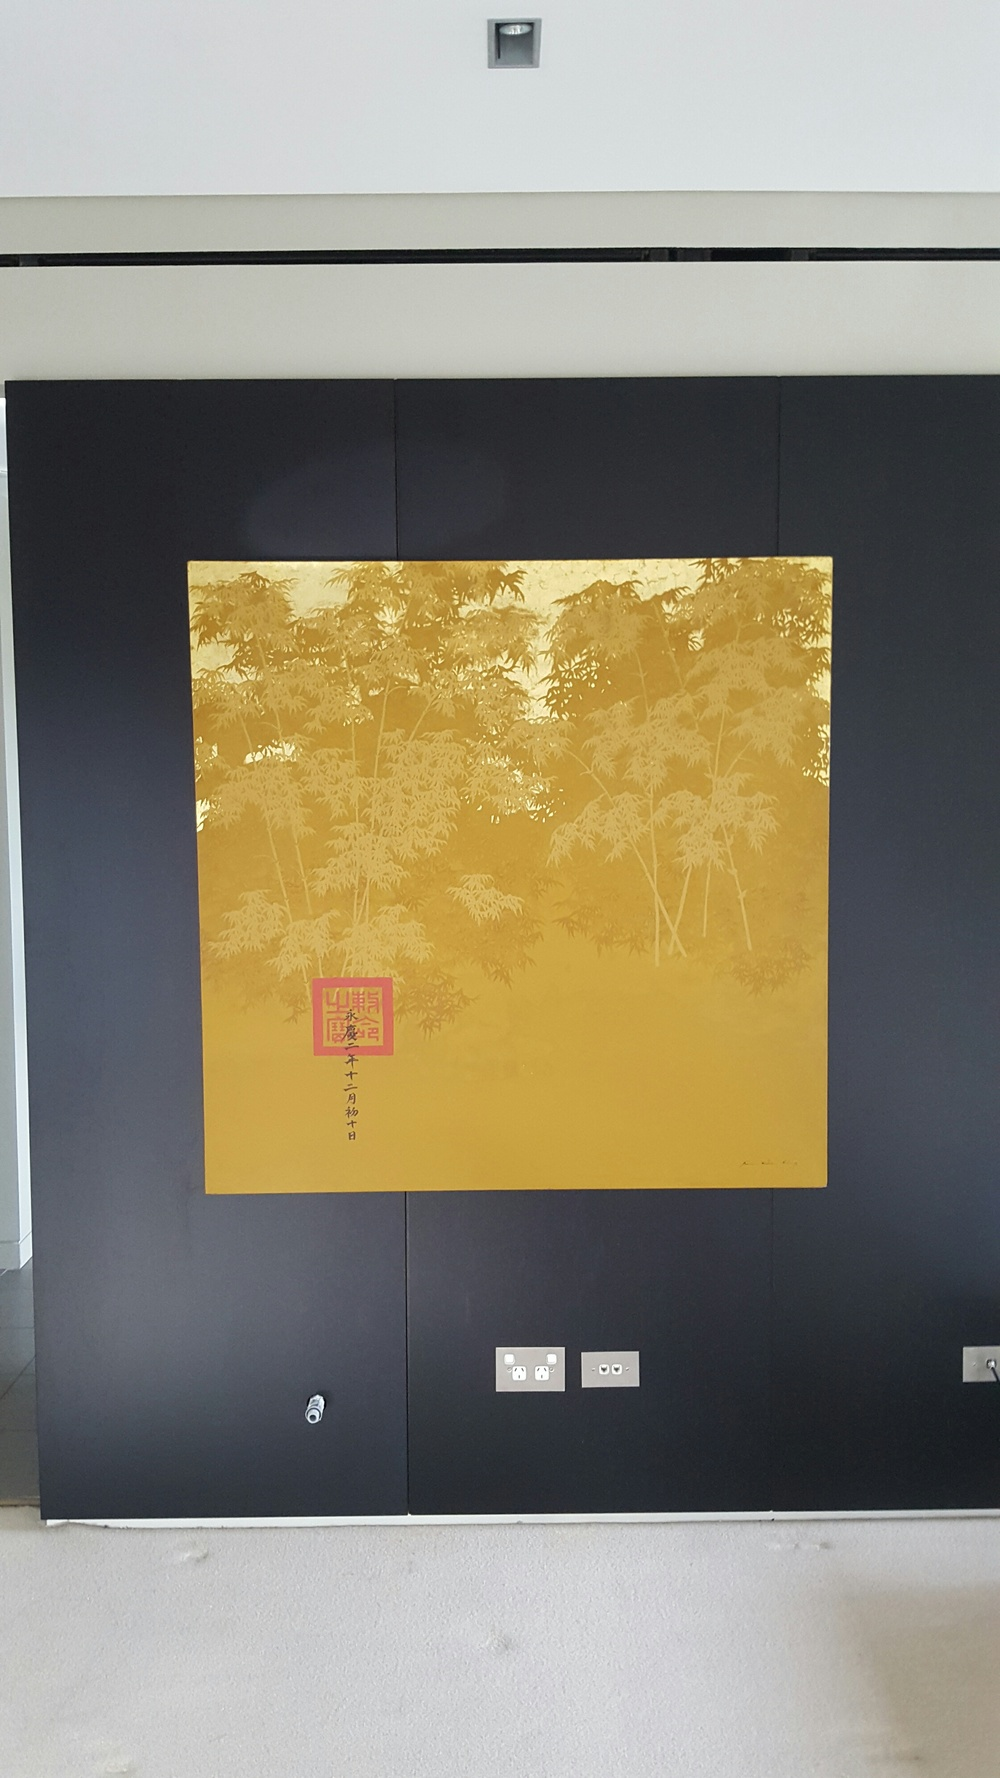 Our clients beloved gold Vietnamese artwork now pops on the new contrasting dark background